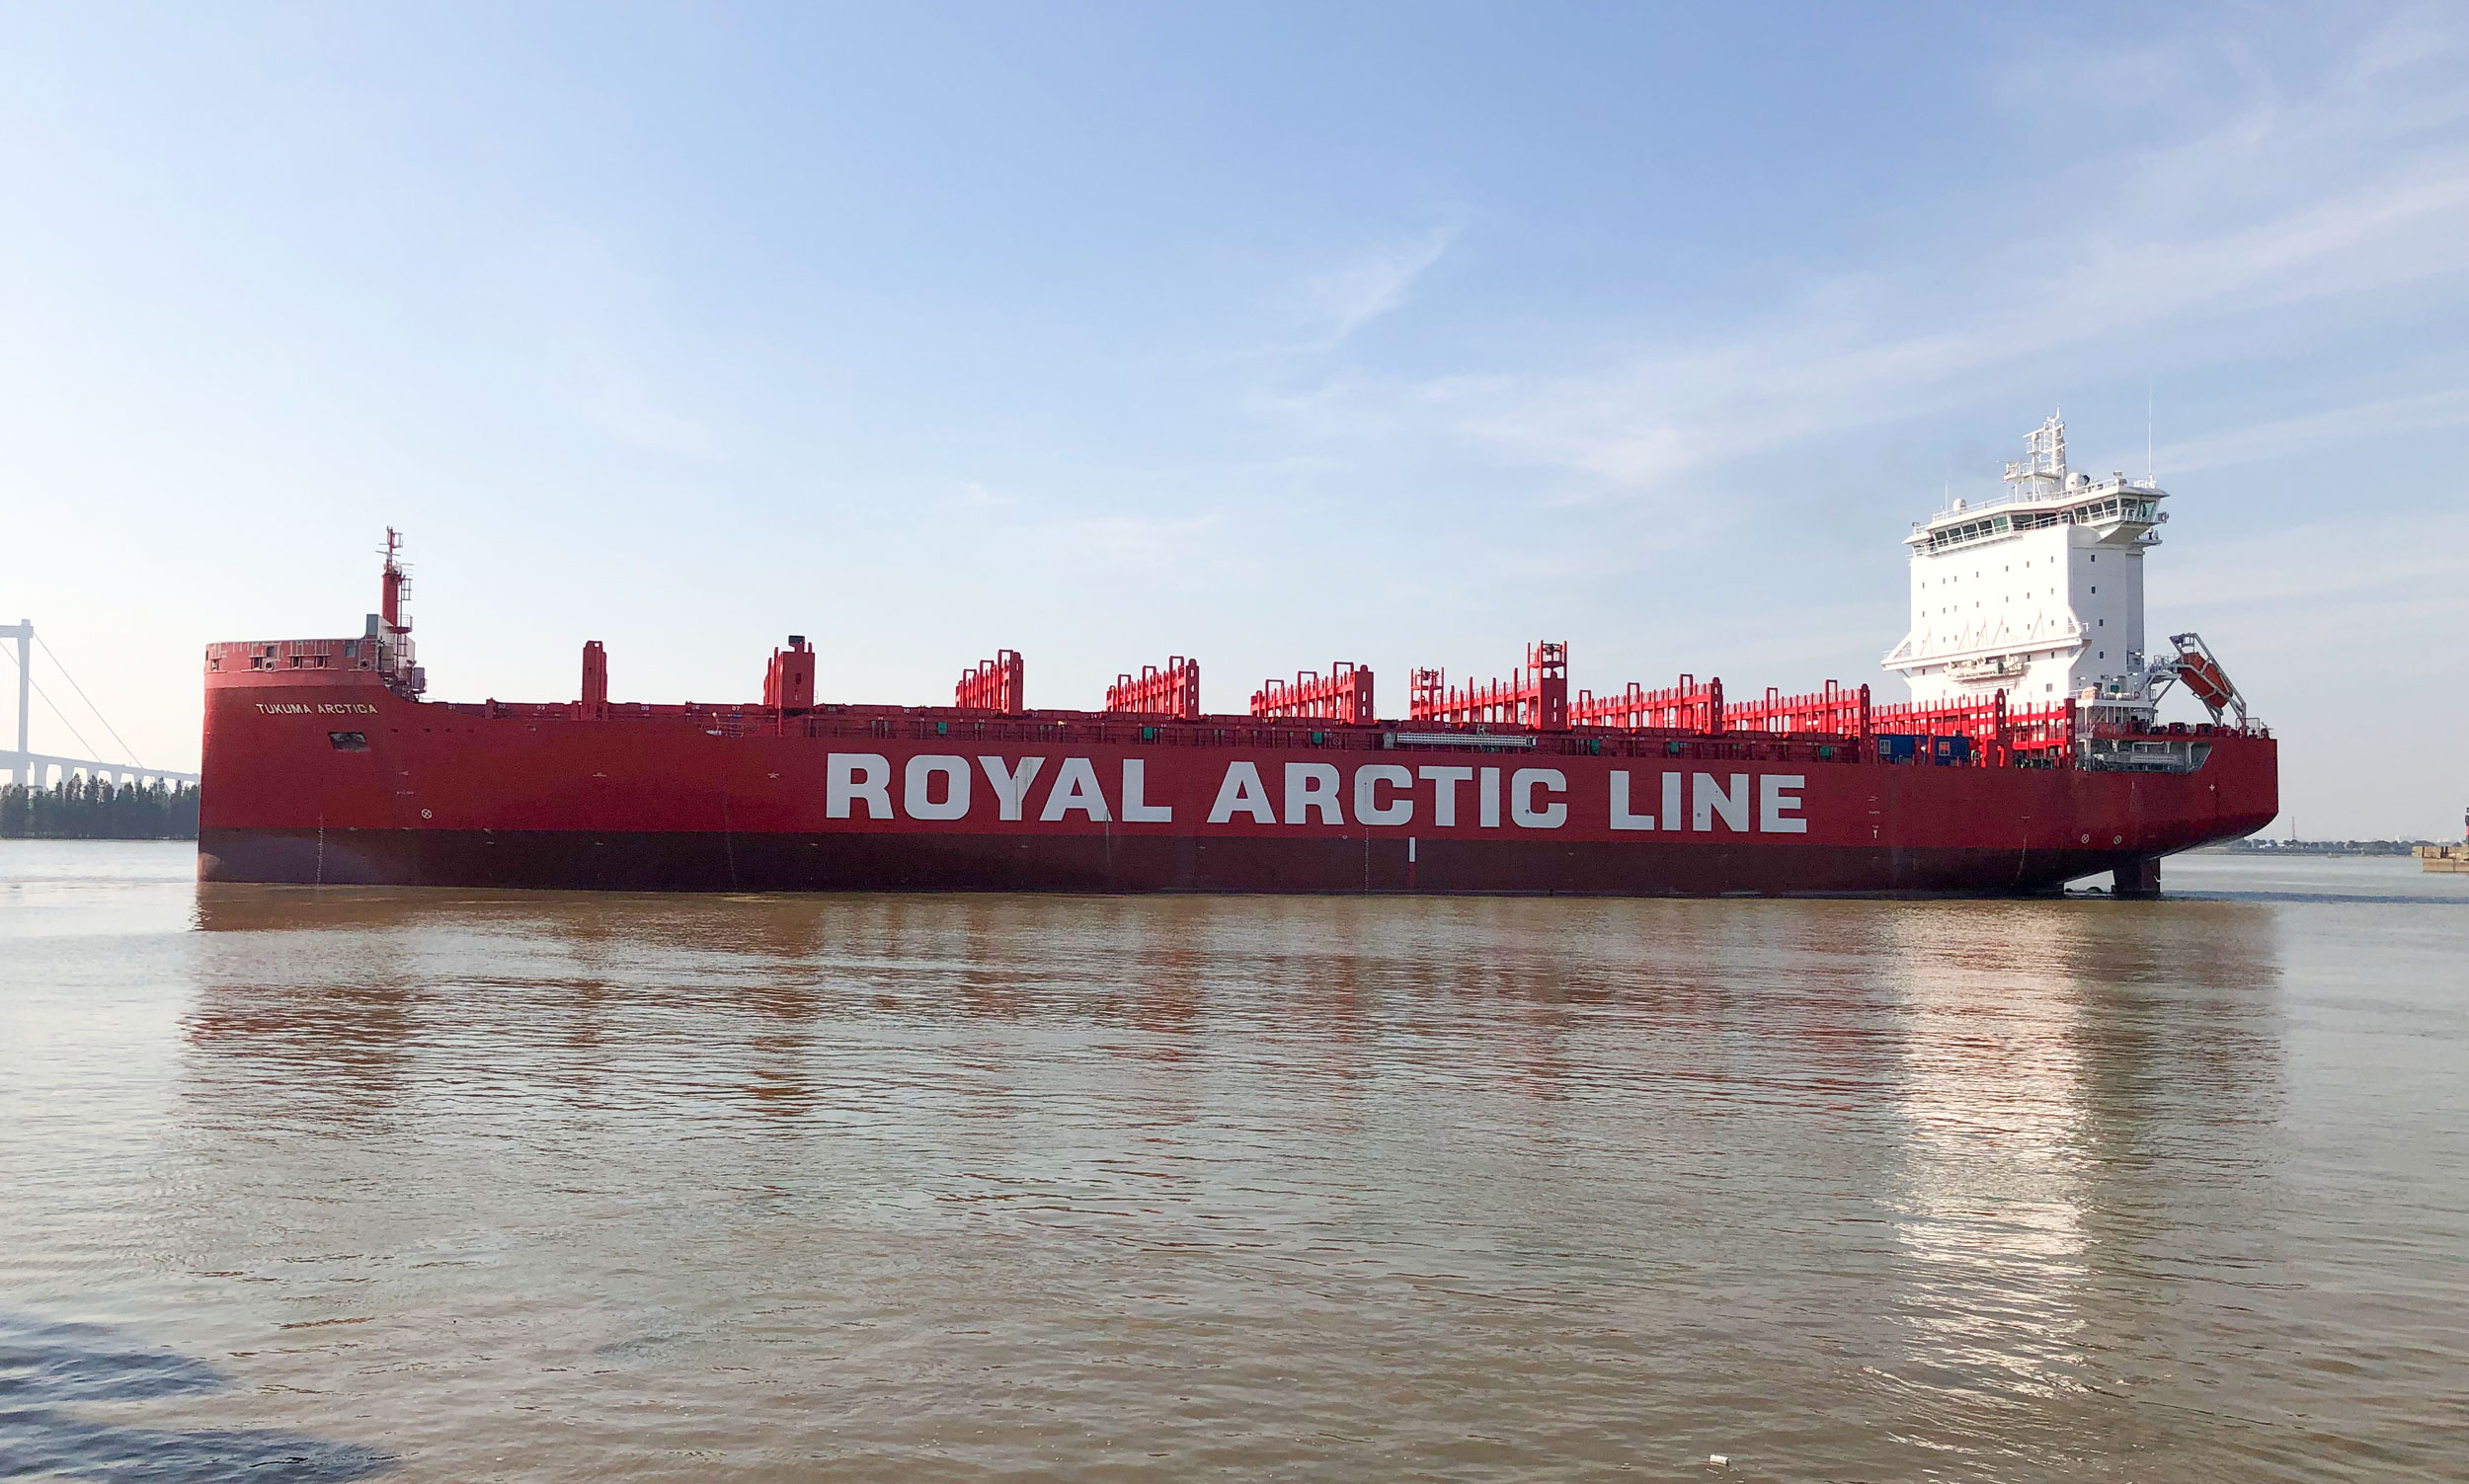 Tukuma Arctica container ship - credit Royal Arctic Line